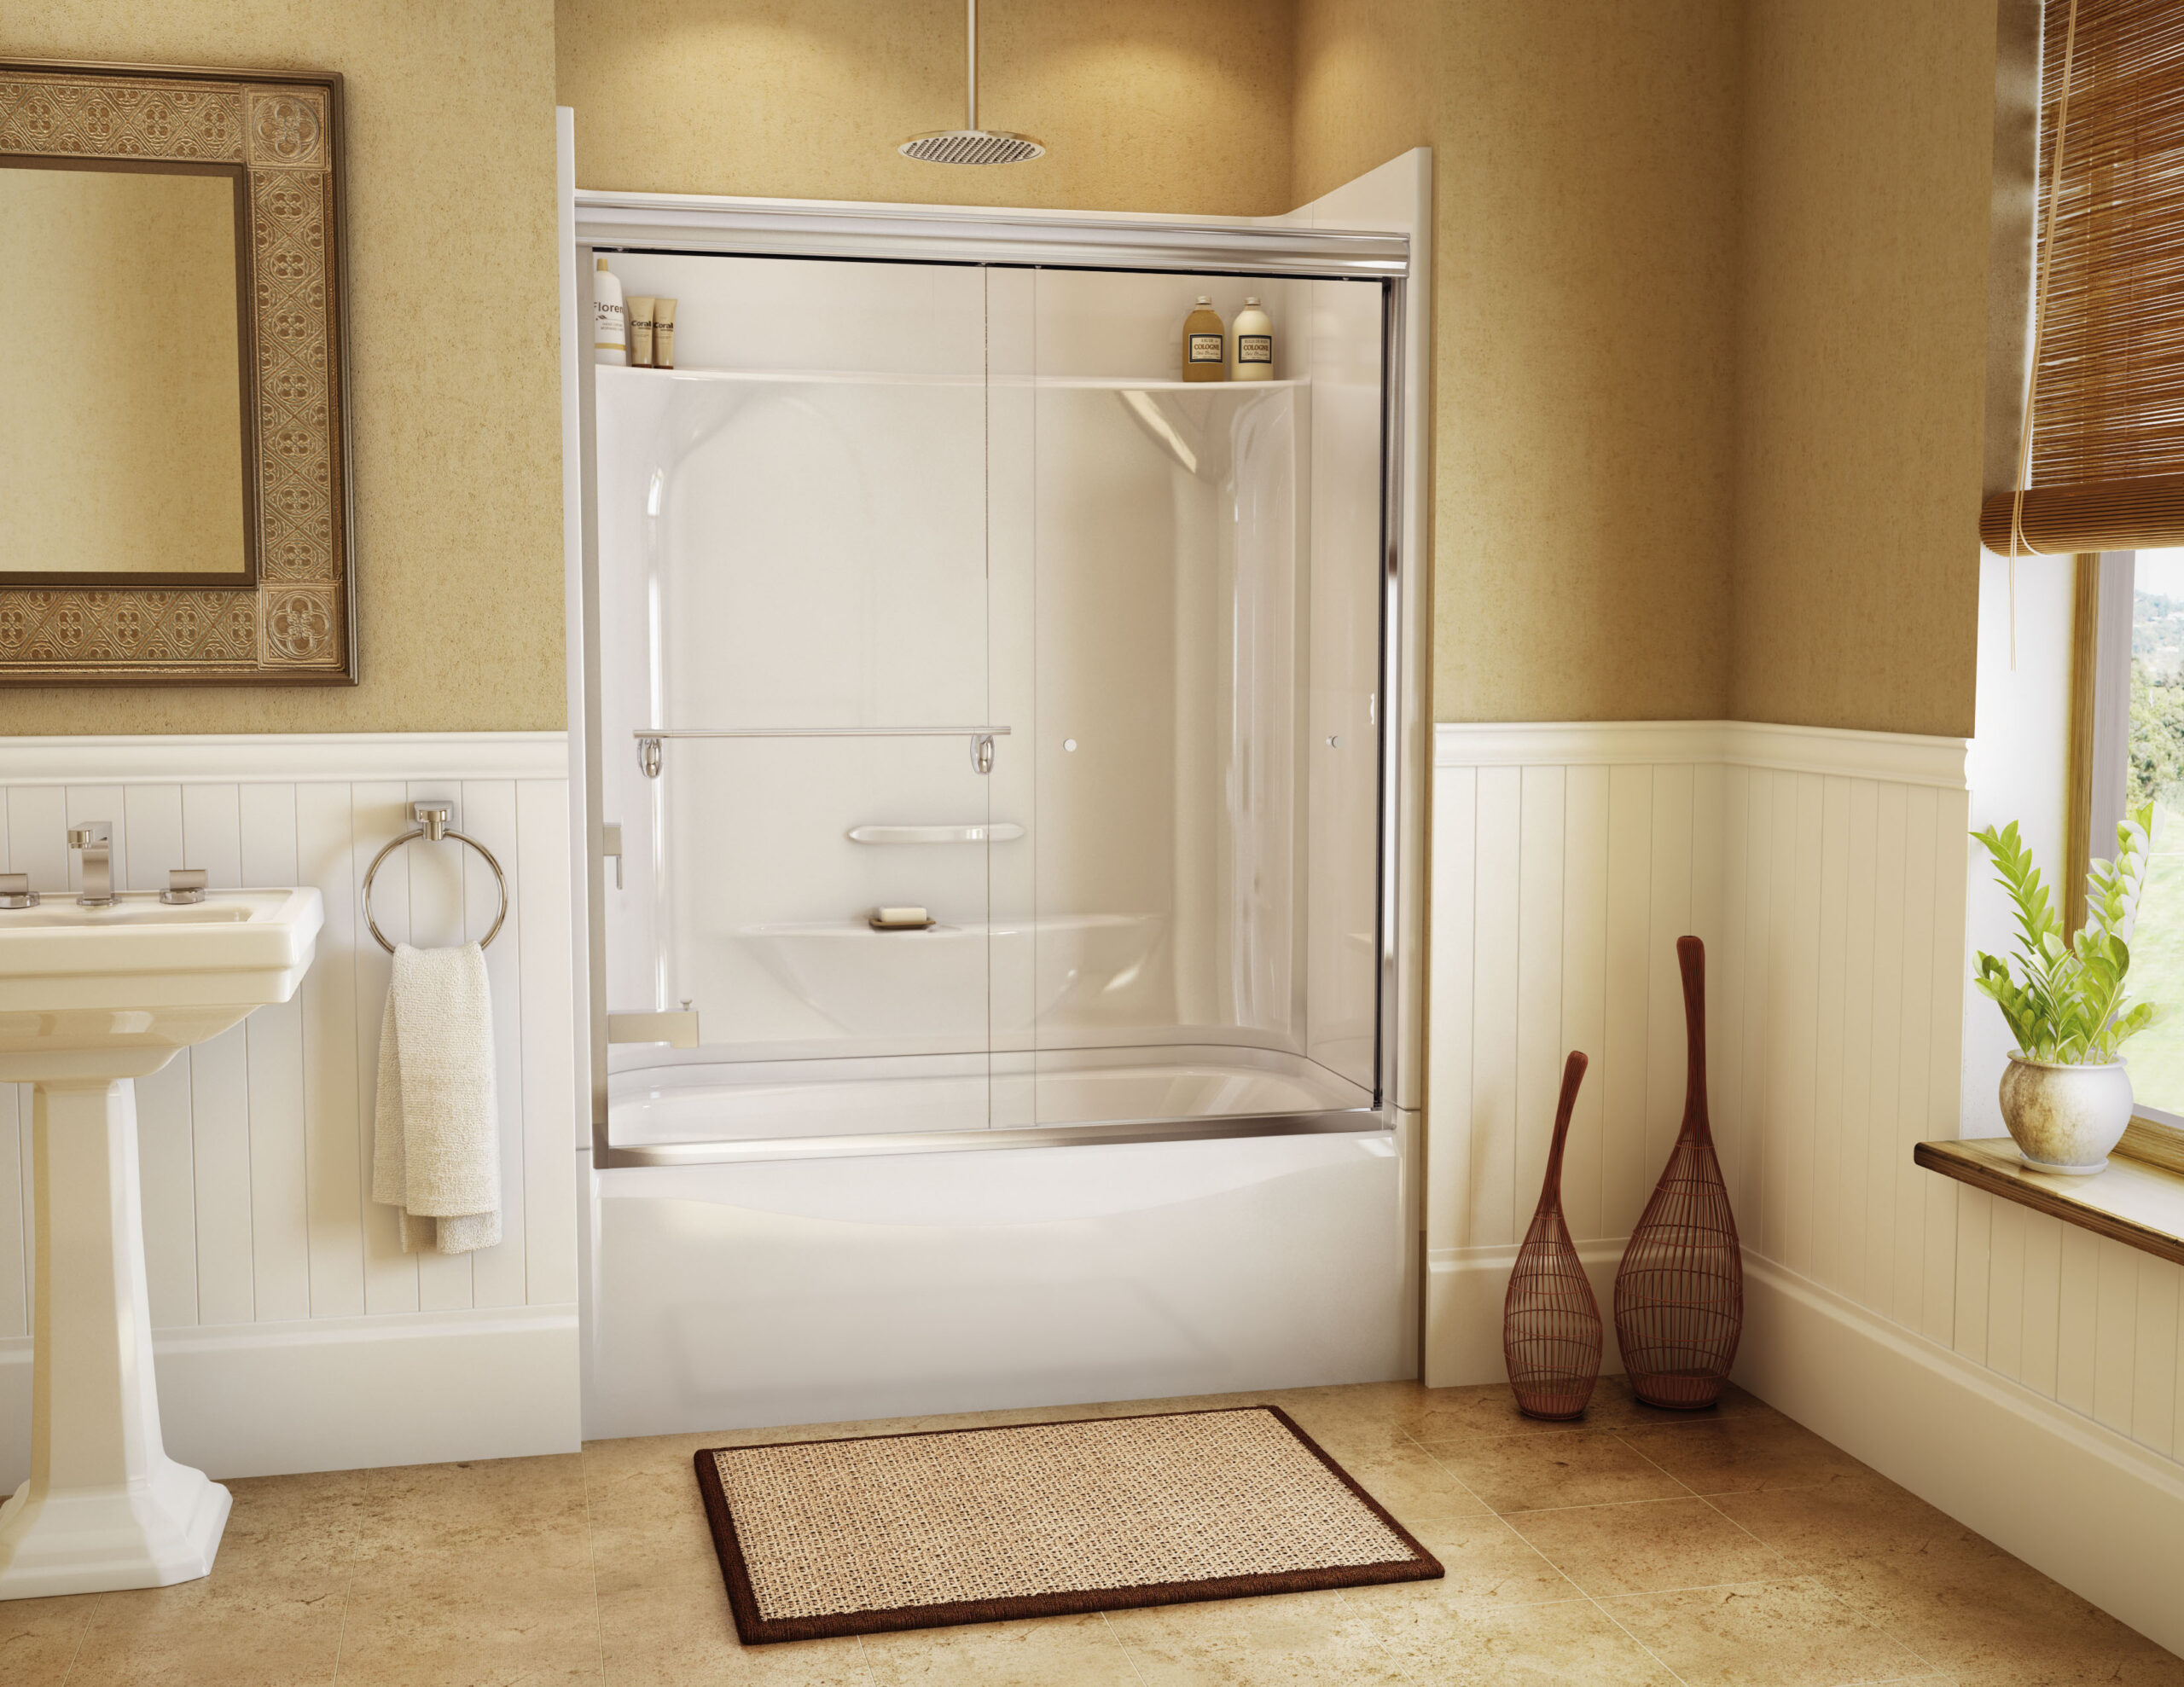 Make Your Bathroom Exciting By Installing the Right Kind of Bathroom Vanity Cabinets